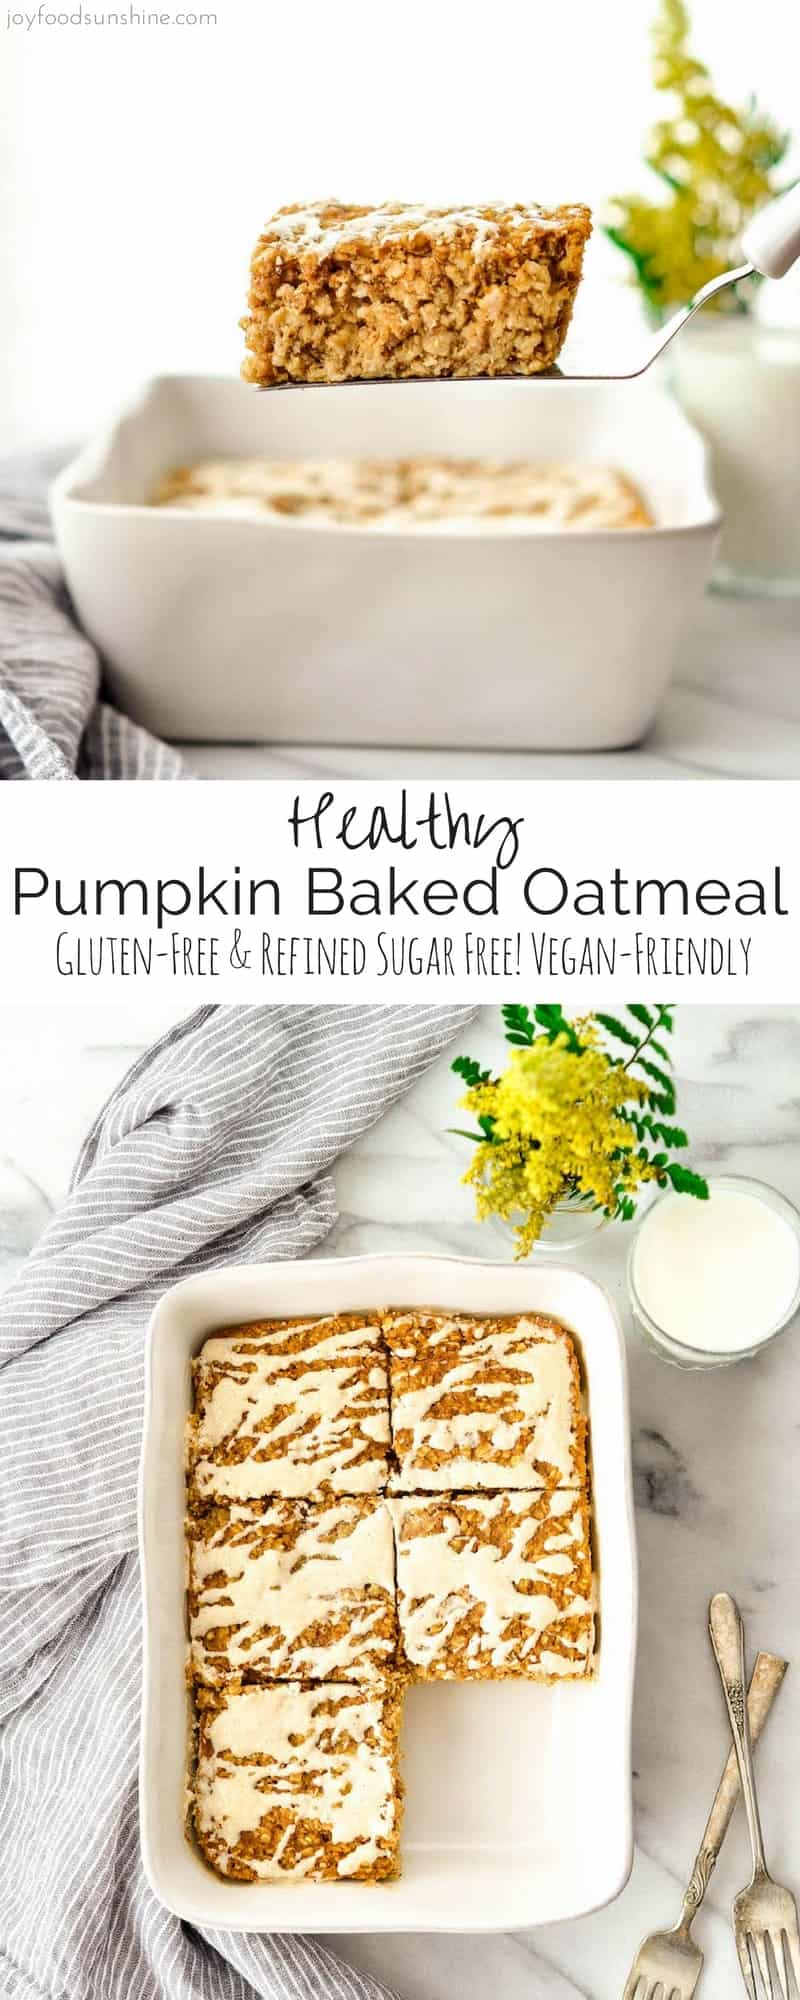 This Pumpkin Baked Oatmeal with a Maple Cinnamon Cream Cheese Glaze is the perfect healthy fall breakfast recipe. Loaded with protein, fiber and nutrients it's gluten-free, has no refined sugar and can be dairy-free & vegan-friendly!